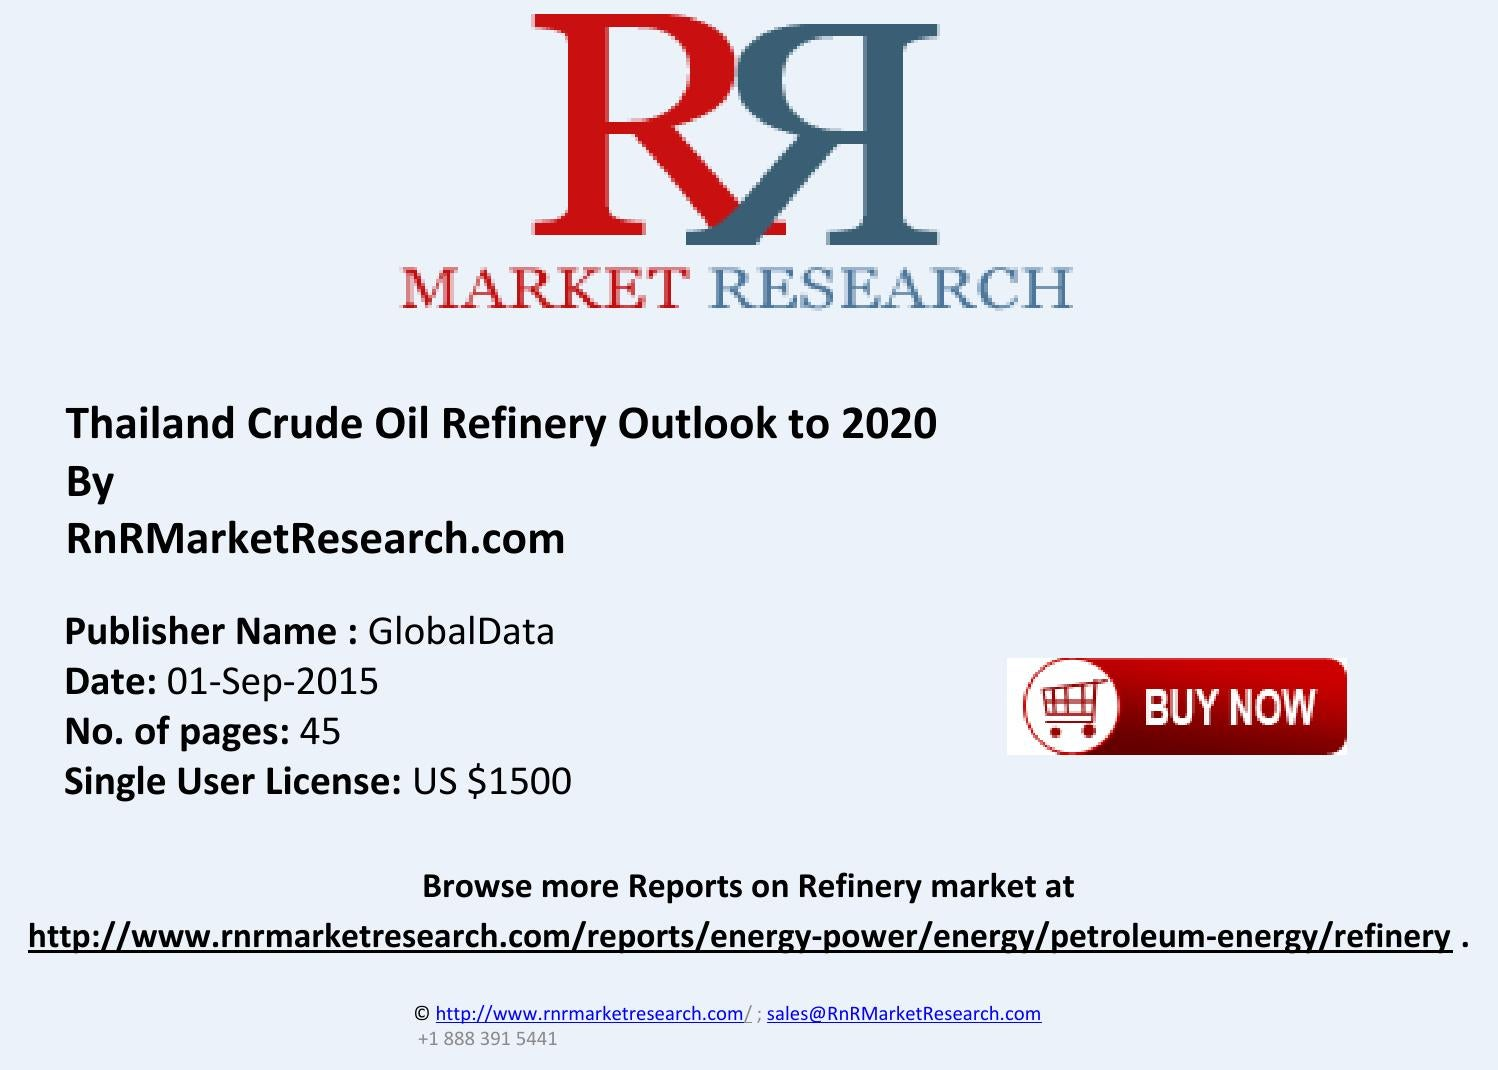 Thailand Crude Oil Refinery Outlook to 2020 and Thailand